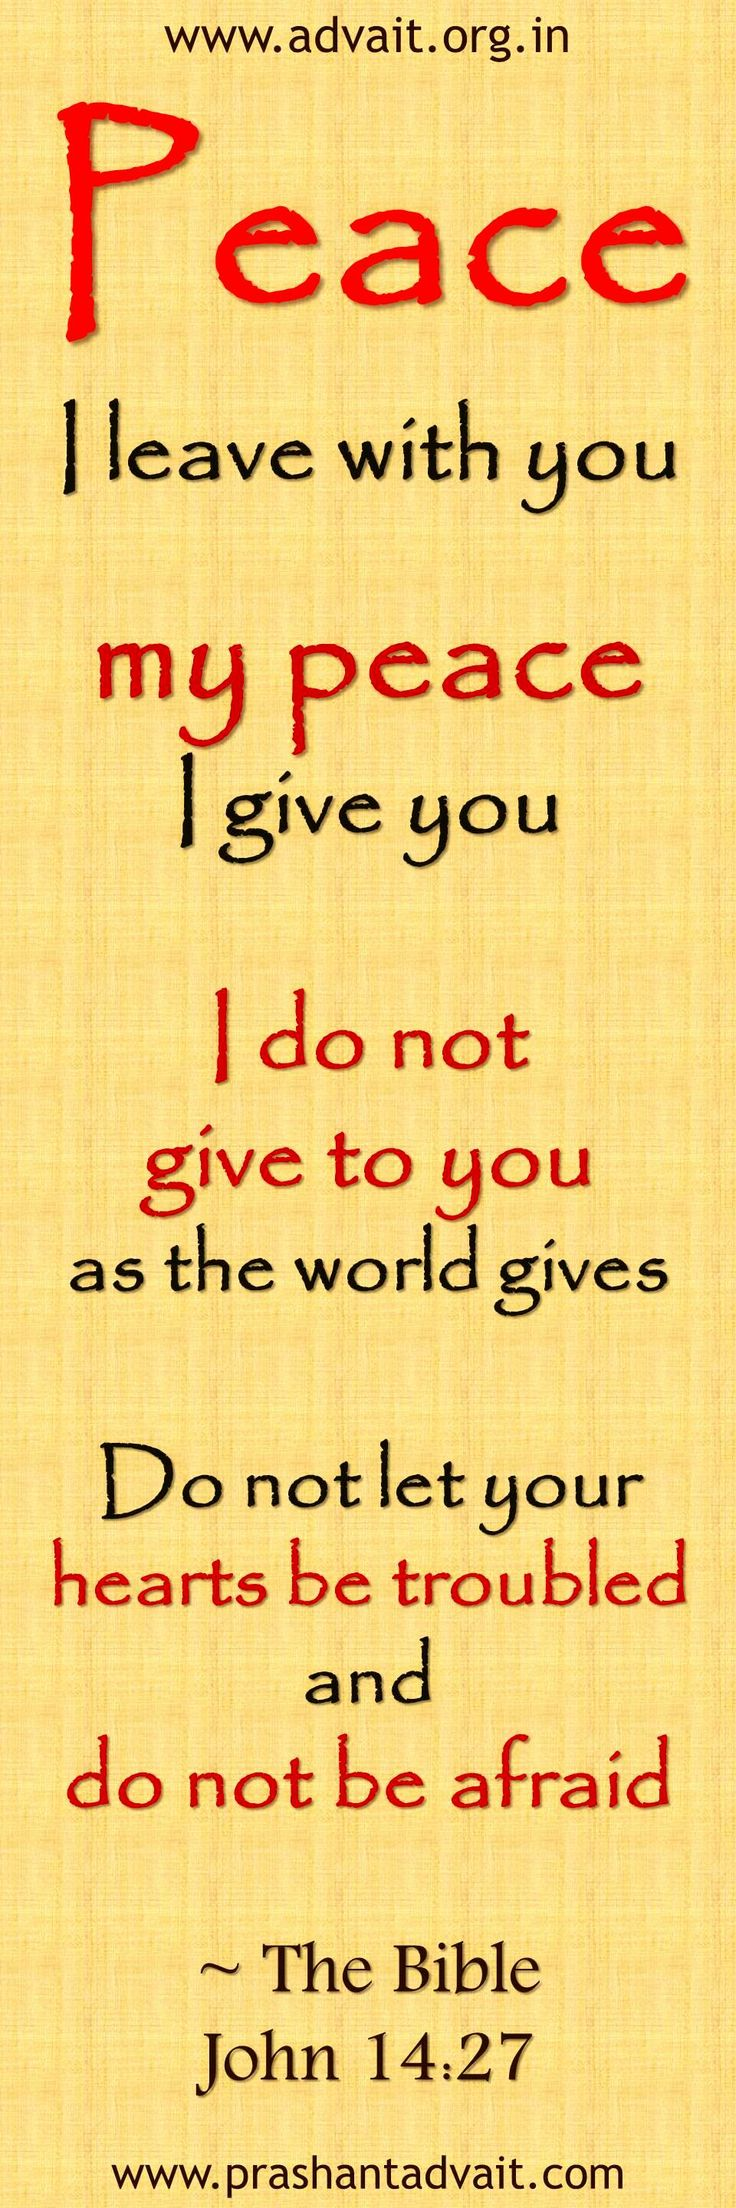 Peace I leave with you, my peace I give you. I do not give to you as the world gives. Do not let your hearts be troubled and do not be afraid. ~ Shri Prashant #Advait #peace #heart #fear #love Read at:- prashantadvait.com Watch at:- www.youtube.com/c/ShriPrashant Website:- www.advait.org.in Facebook:- www.facebook.com/prashant.advait LinkedIn:- www.linkedin.com/in/prashantadvait Twitter:- https://twitter.com/Prashant_Advait